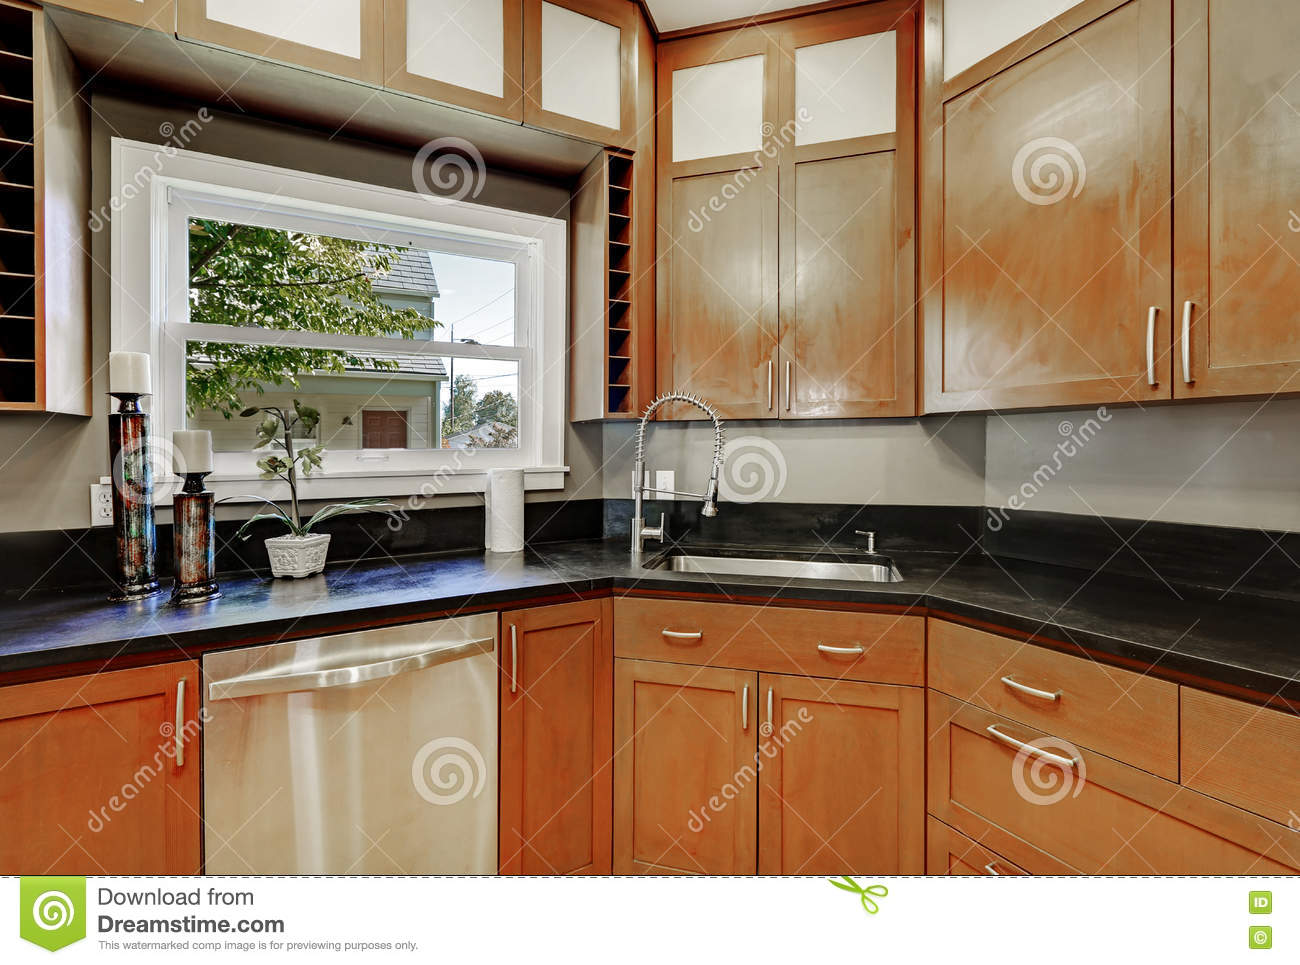 Modern kitchen counter close up - Close Up Of Kitchen Cabinets Black Counter Top Small Window Stock Photo